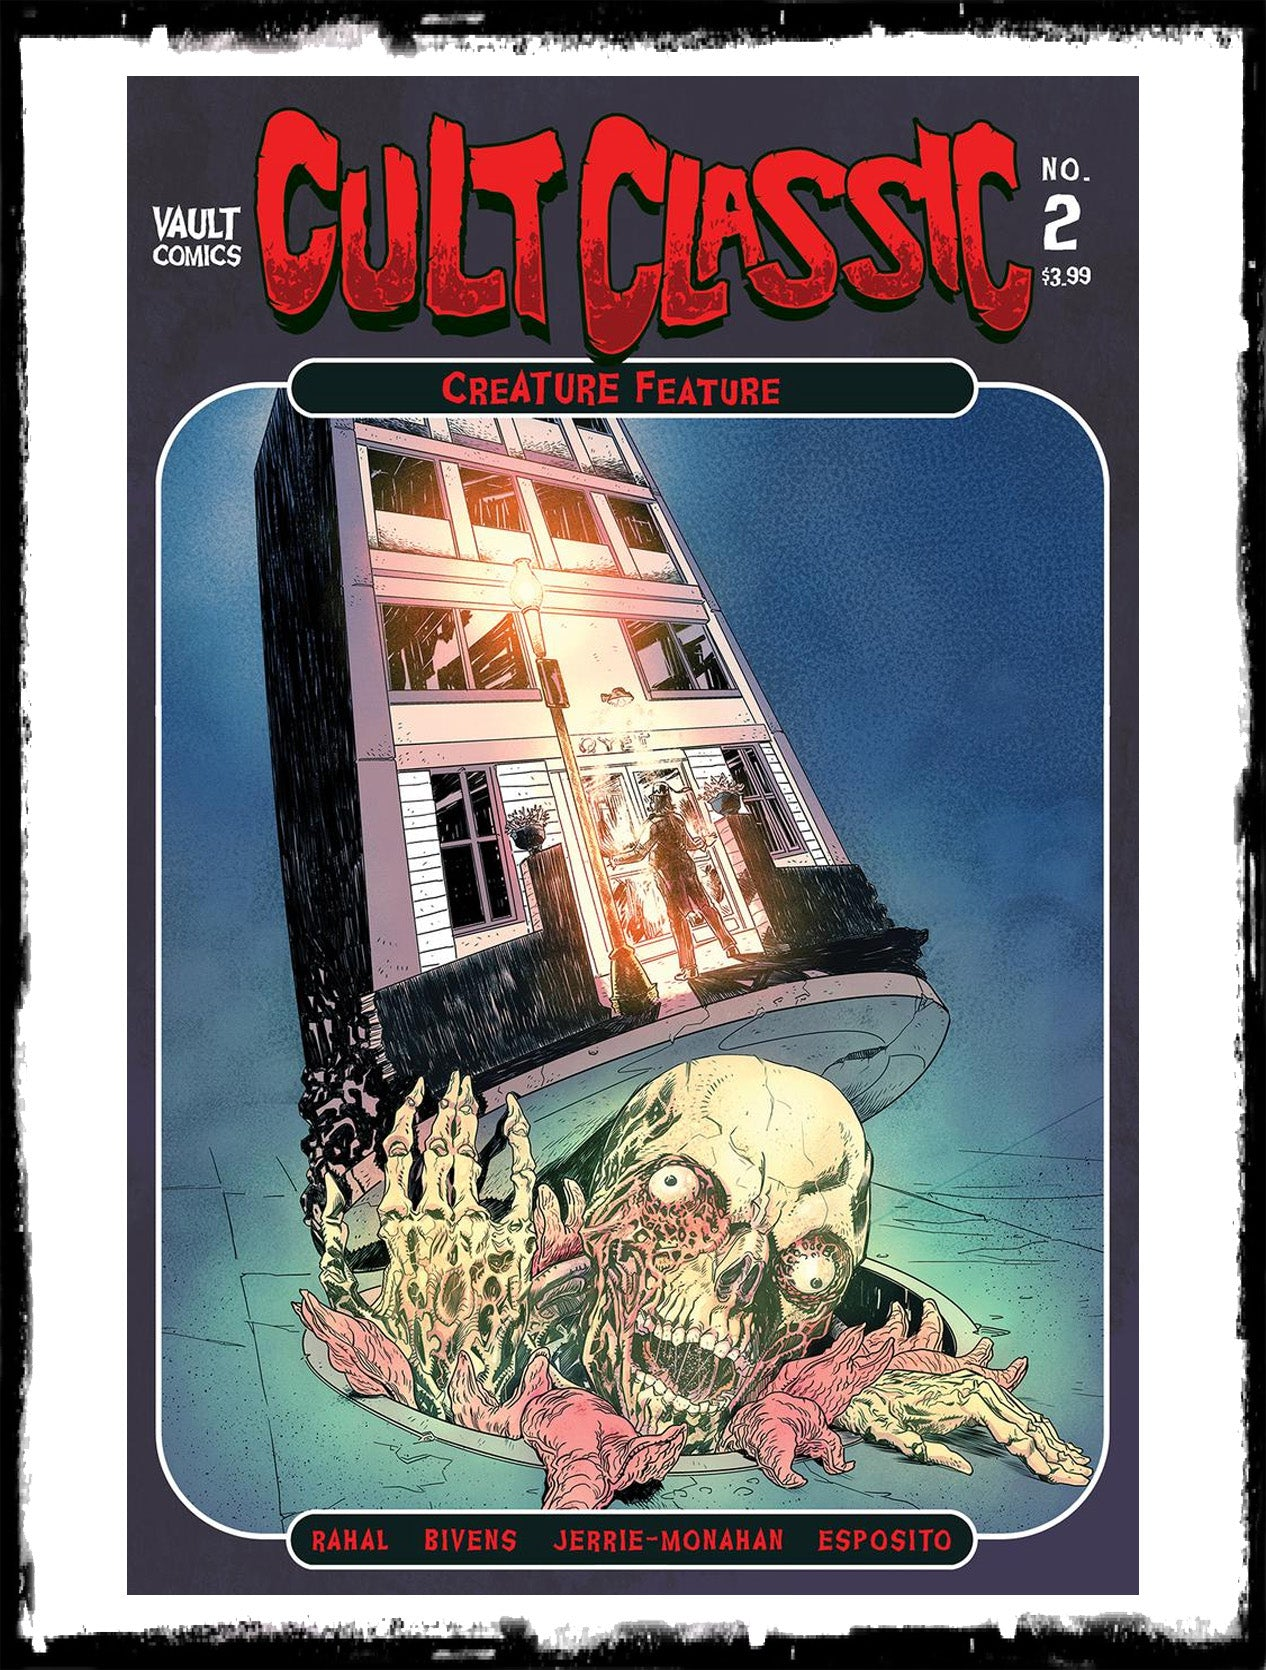 CULT CLASSIC CREATURE FEATURE - #2 (2019 - NM)